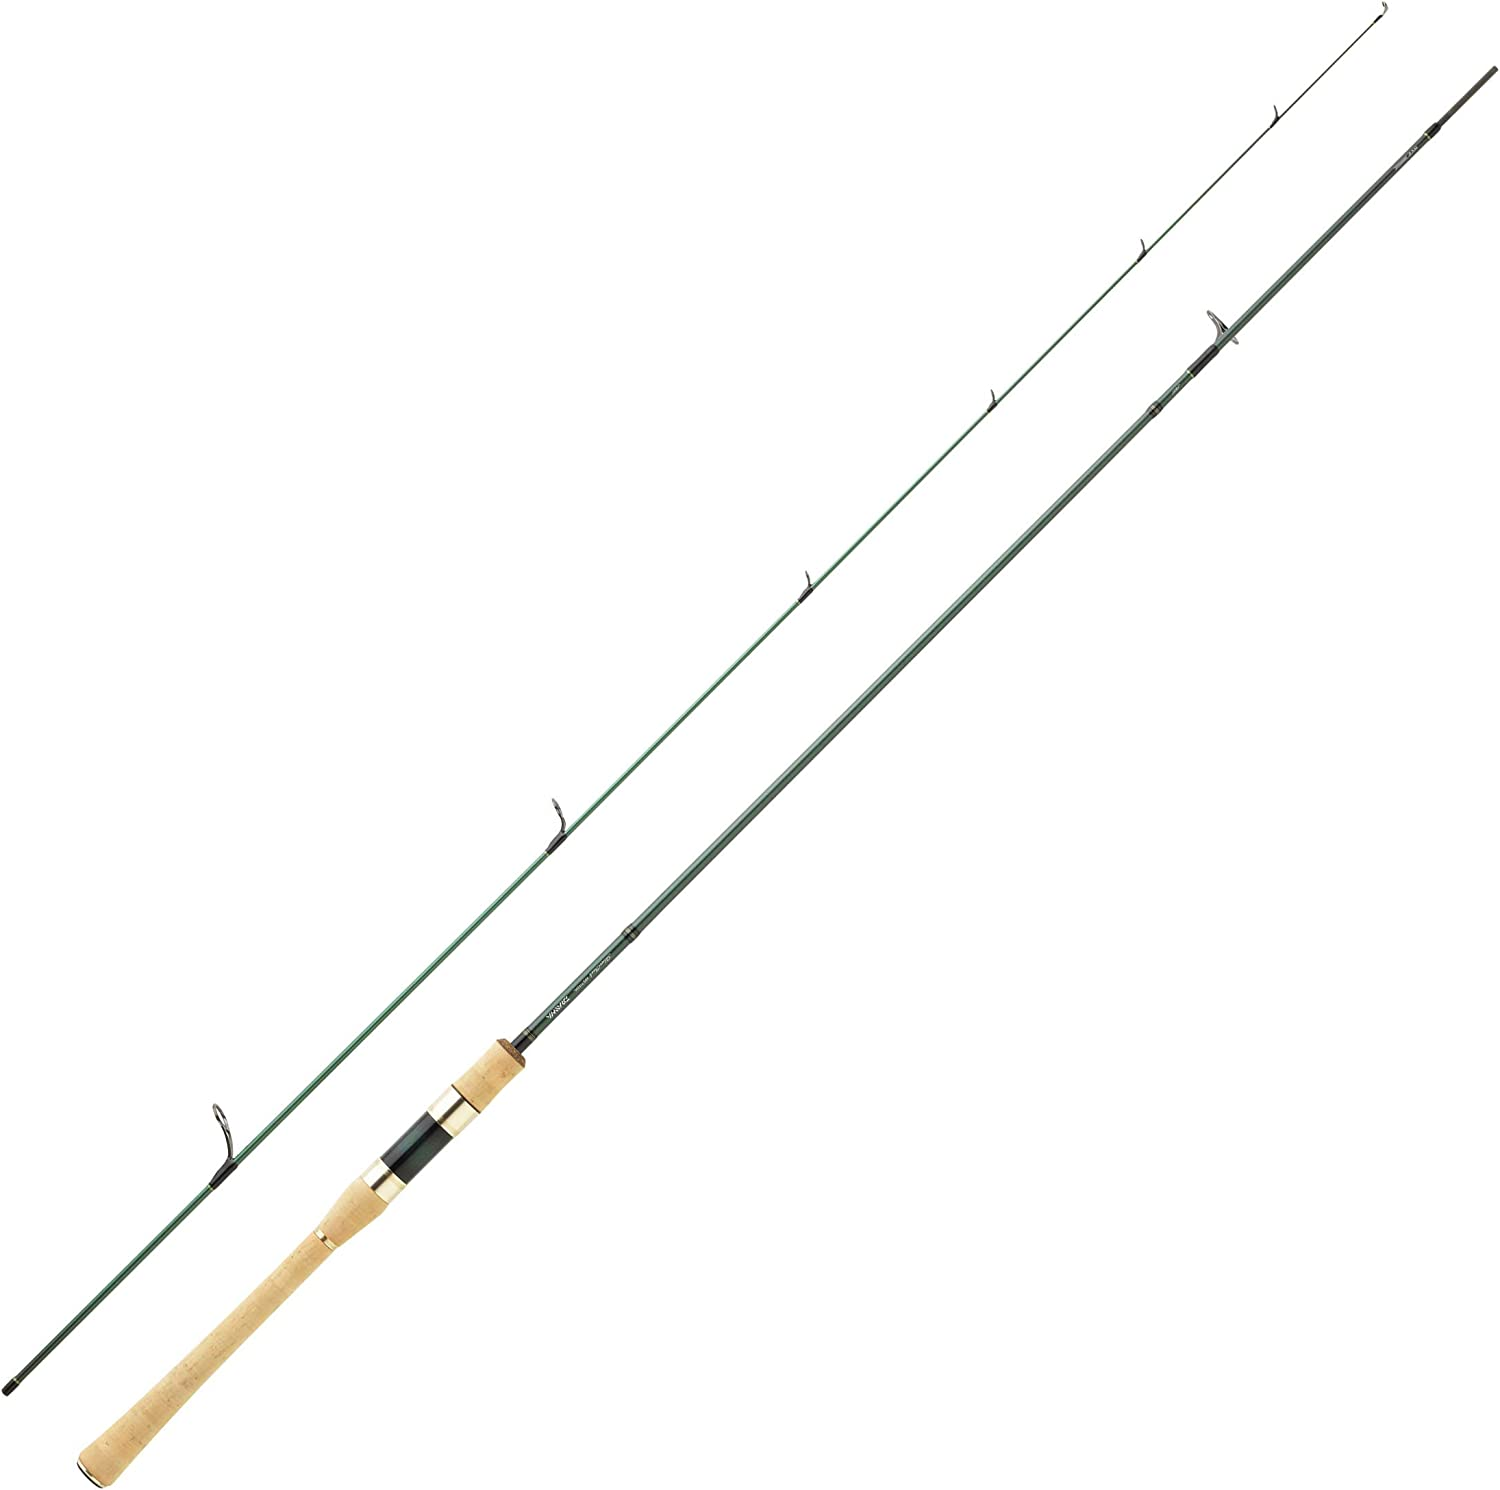 Daiwa CANNE Spinning Silver Creek AGS - 113, 198, 2, 8, 102, 3-14 ...